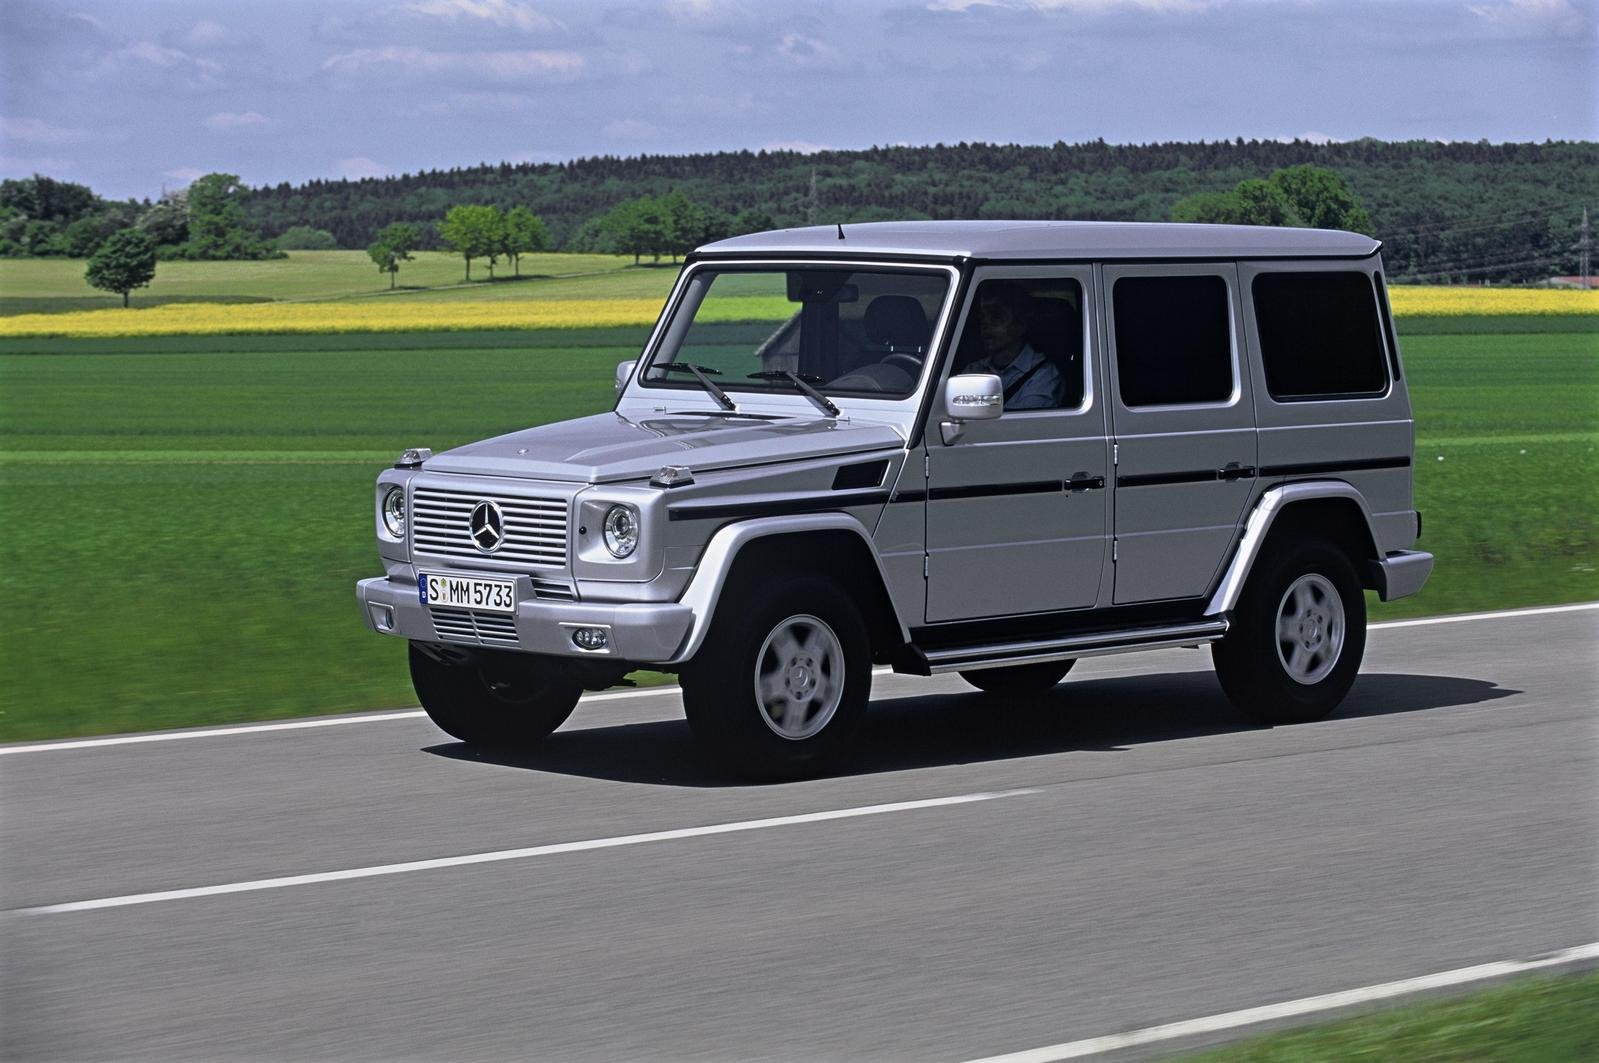 2007 mercedes g class review gallery top speed for Mercedes benz g500 review